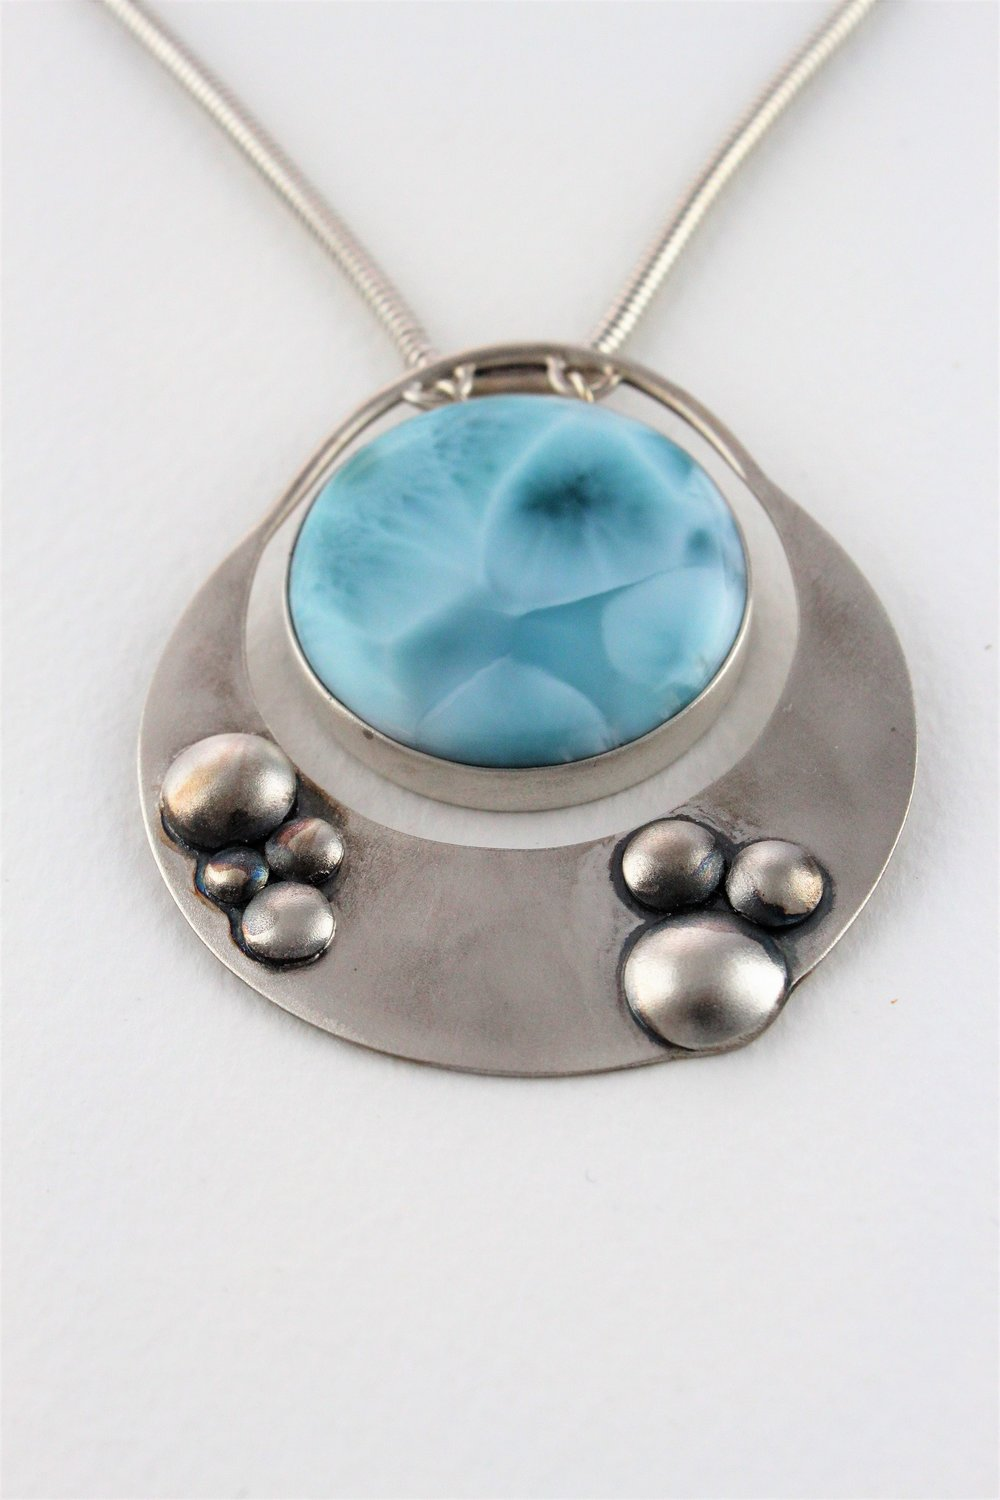 Valma-Rhodes-Seaside-bubbles-Oxidised-sterling-silver-and-Larimar-2017-A.JPG